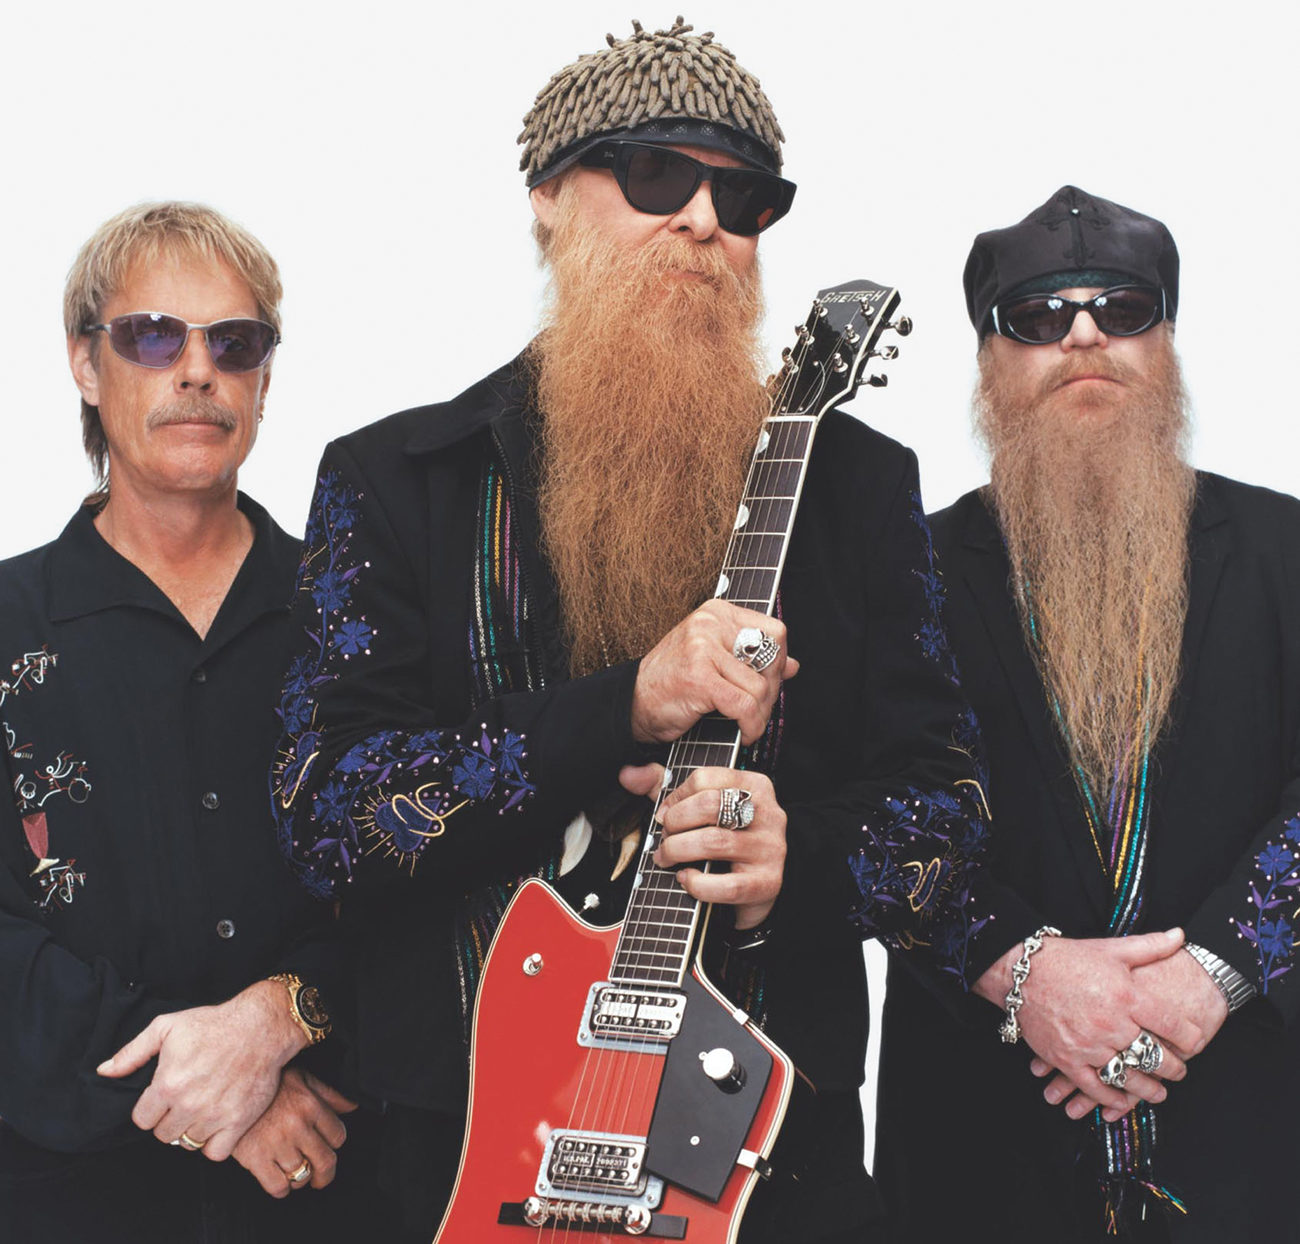 ZZ Top Billy Gibbons Frank Beard Dusty 2003 e1610725206613 20 Fang-tastic Facts About From Dusk Till Dawn